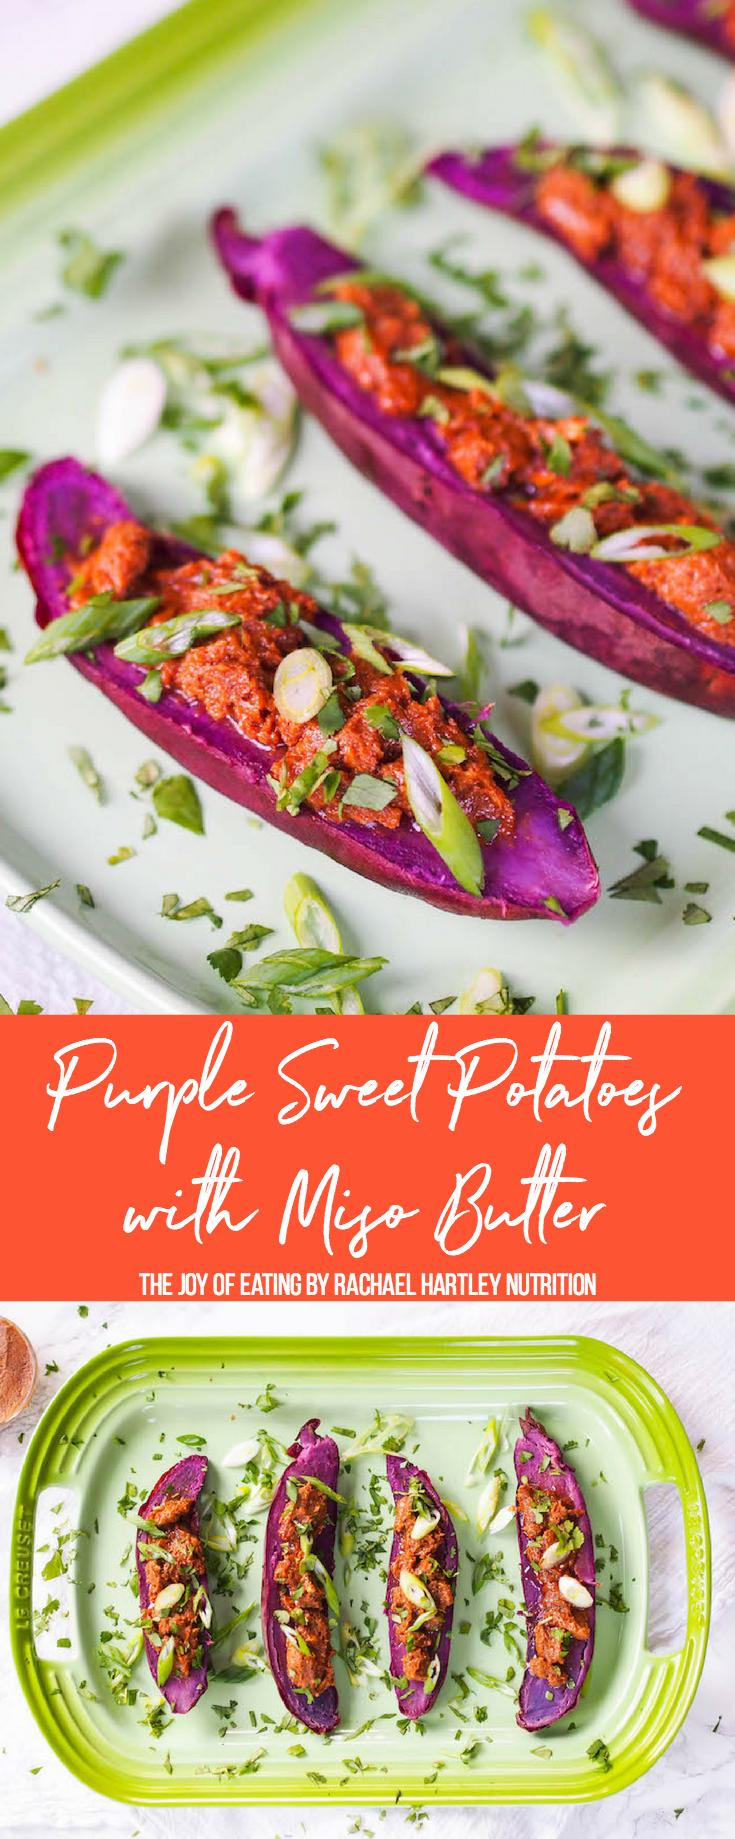 Purple Sweet Potatoes with Miso Butter.png